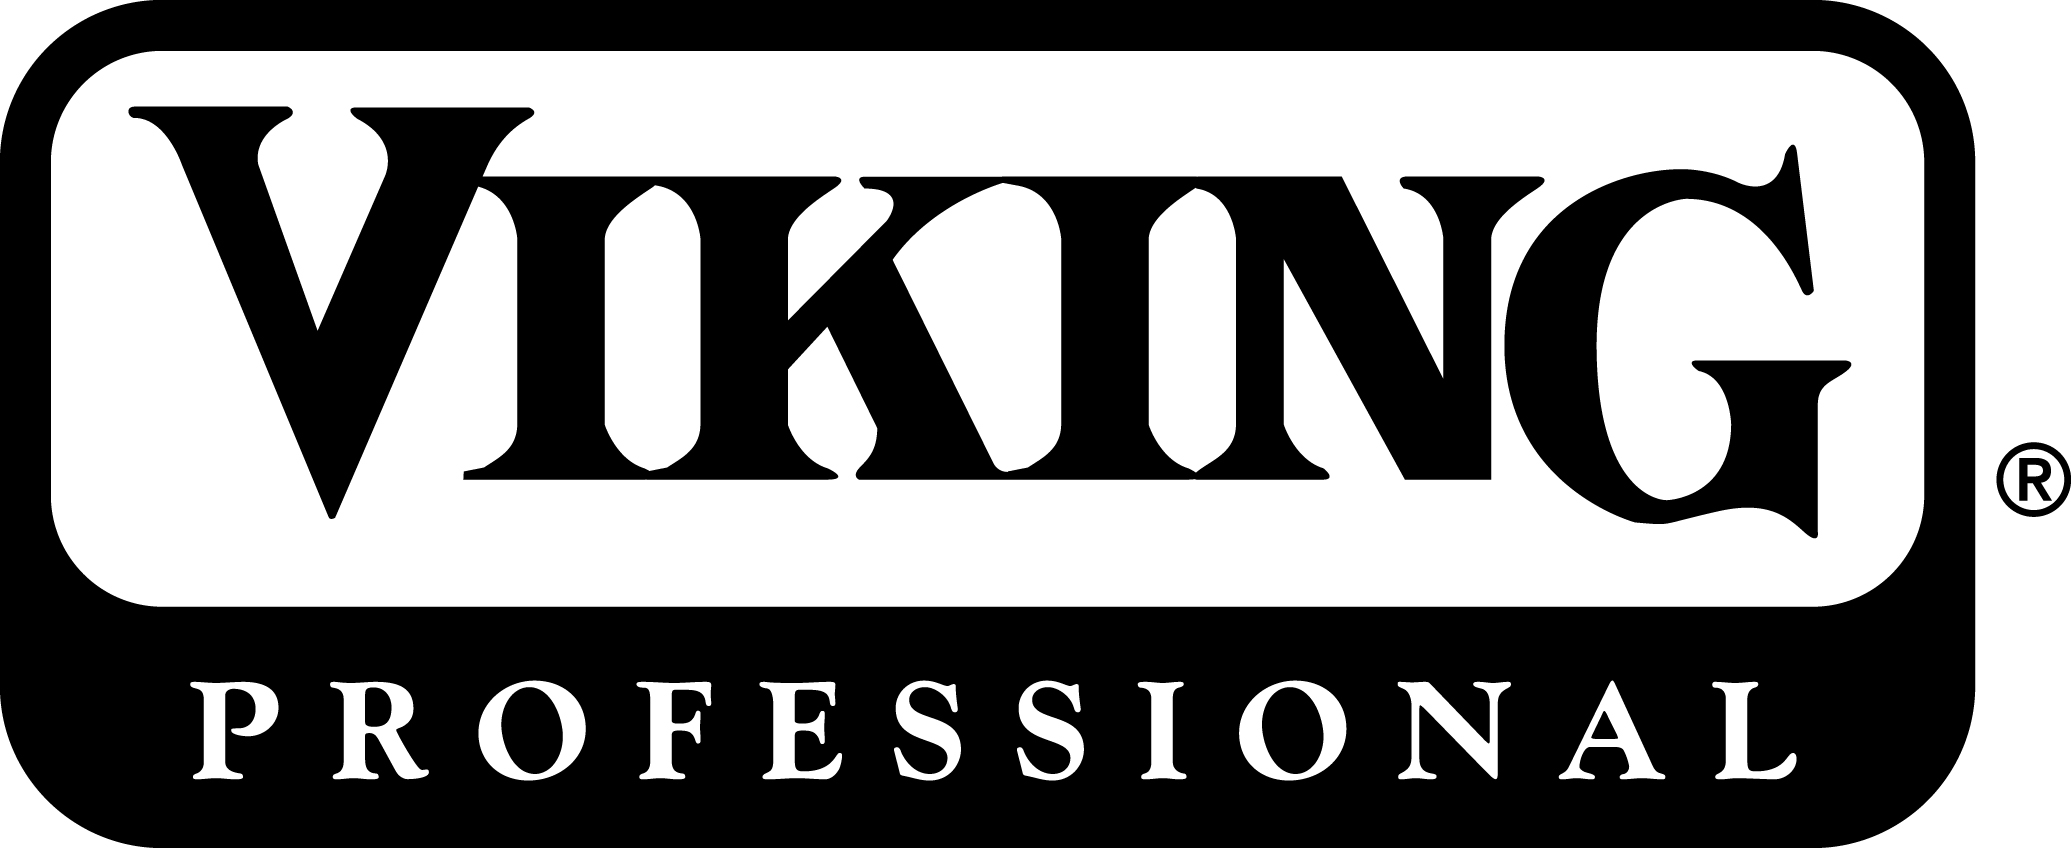 Viking Fridge Repair Nearby, Kenmore Freezer Repair Service